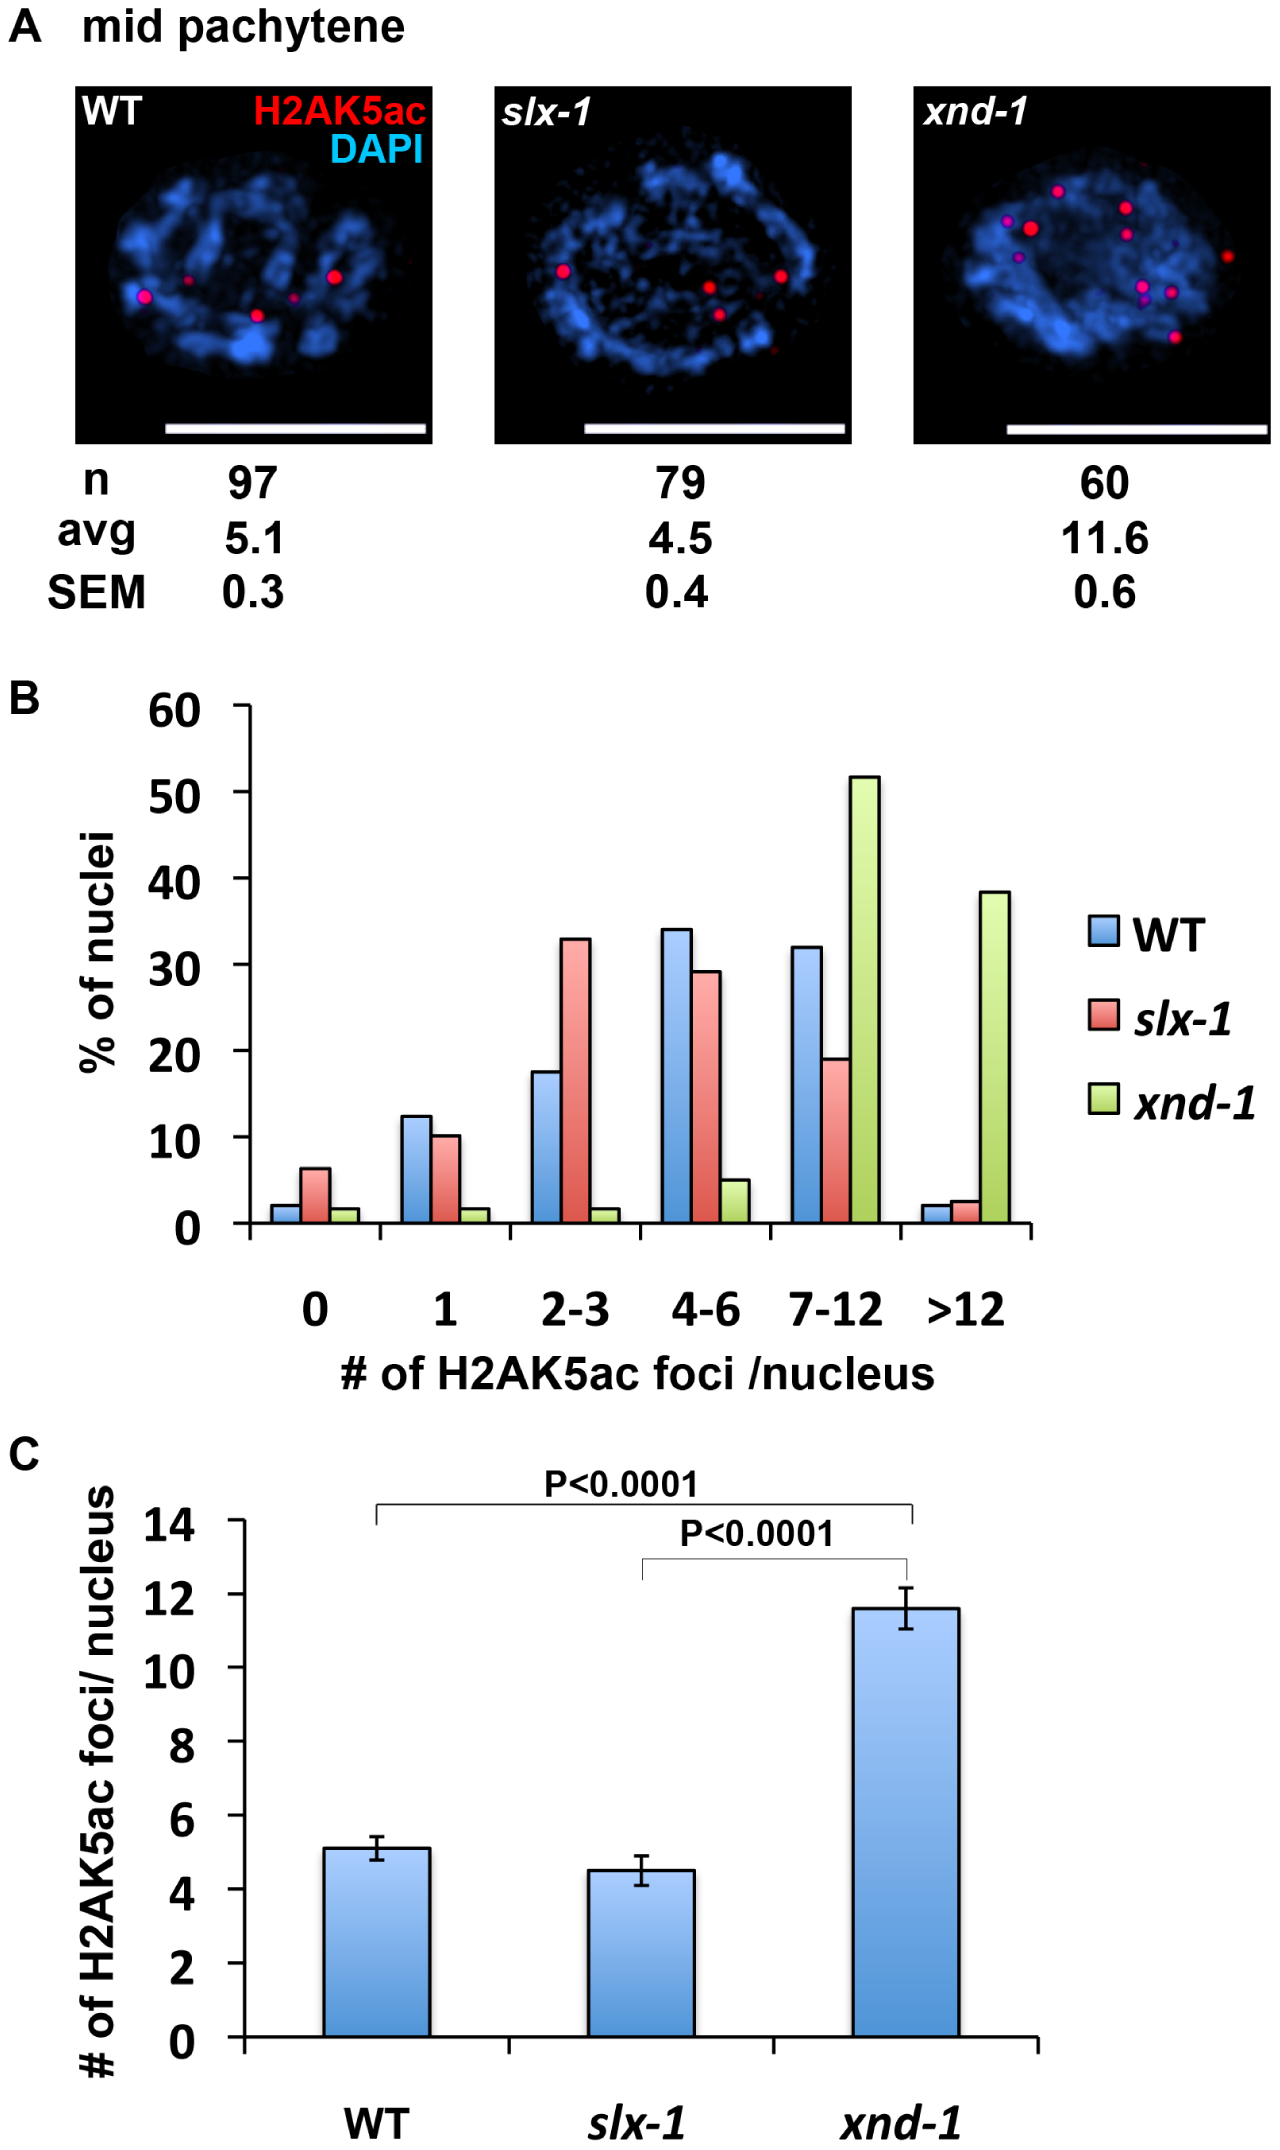 The levels of H2AK5ac are similar between wild type and <i>slx-1</i> mutants.